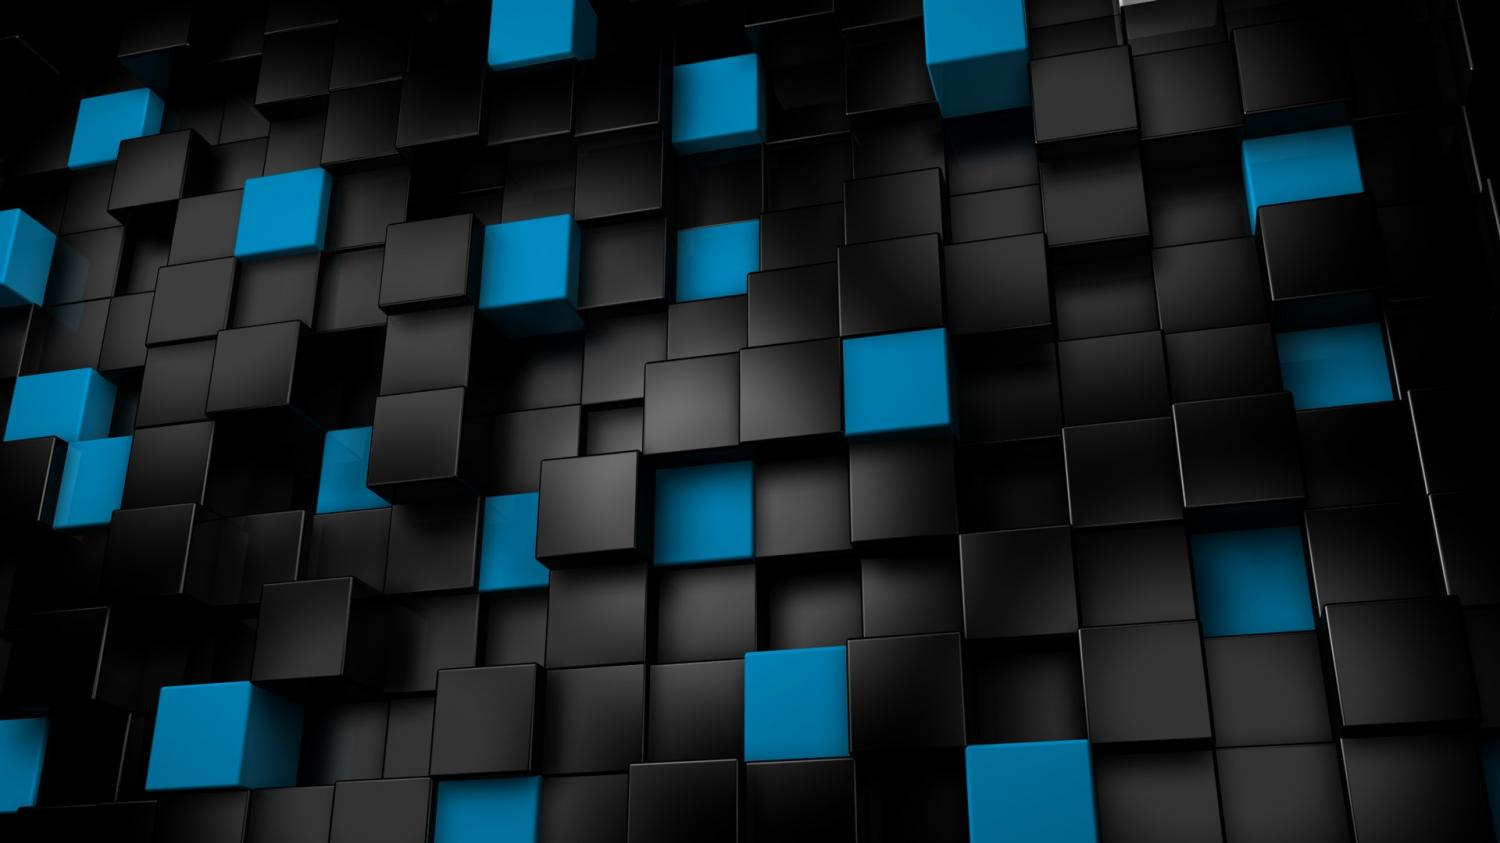 Cubic Wallpaper